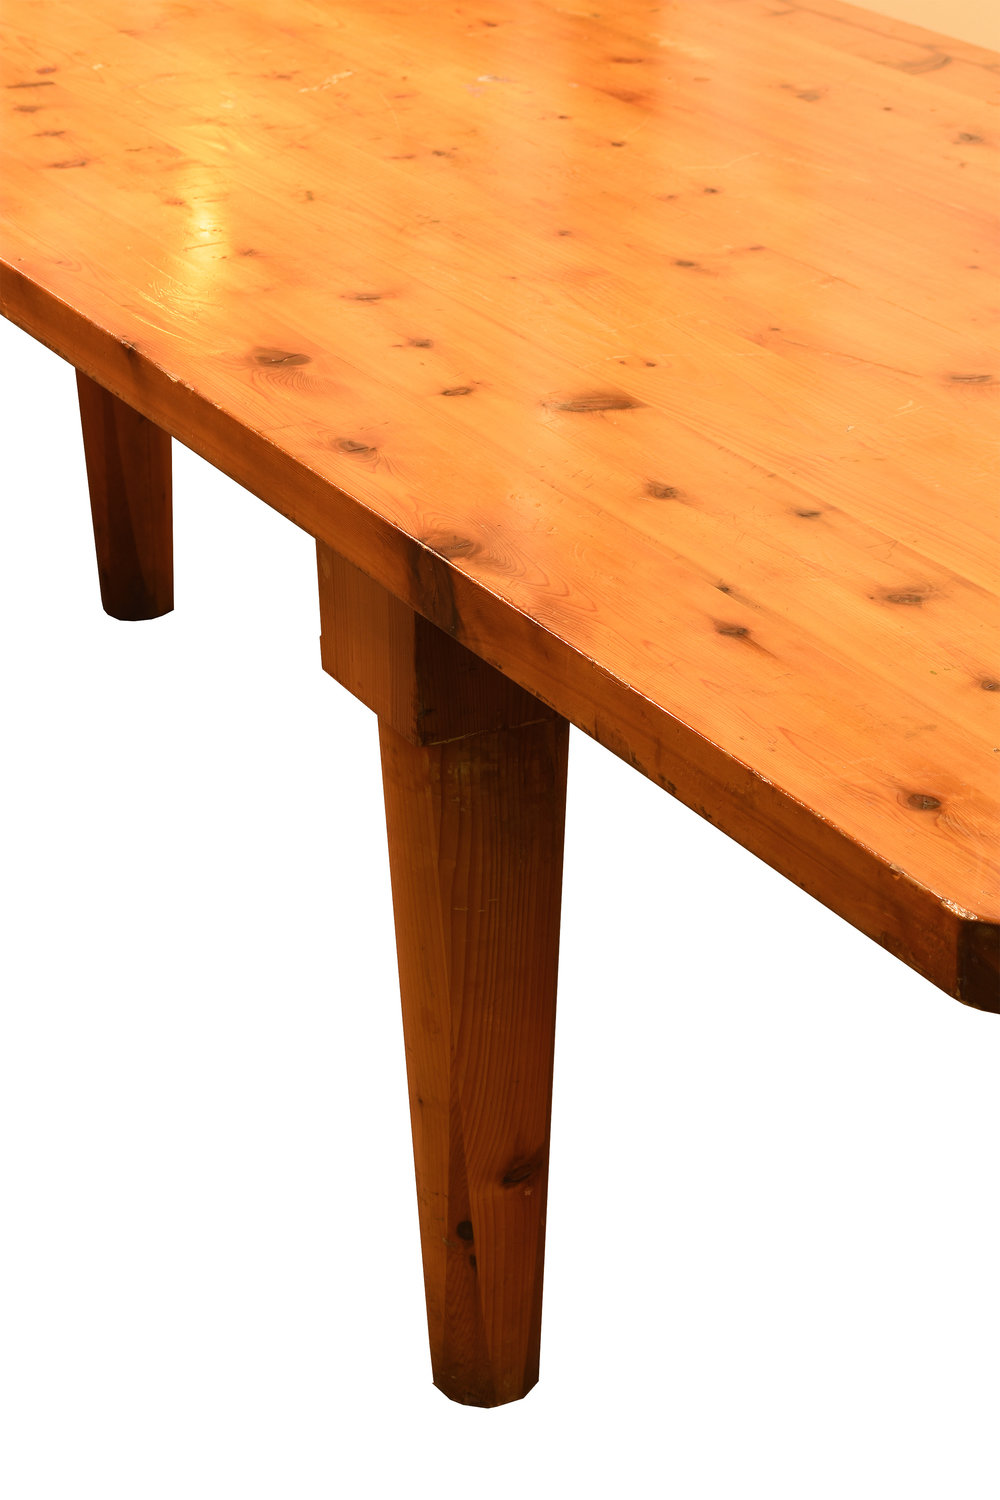 47027 sixteen feet 5 inche pine lodge table 2.jpg